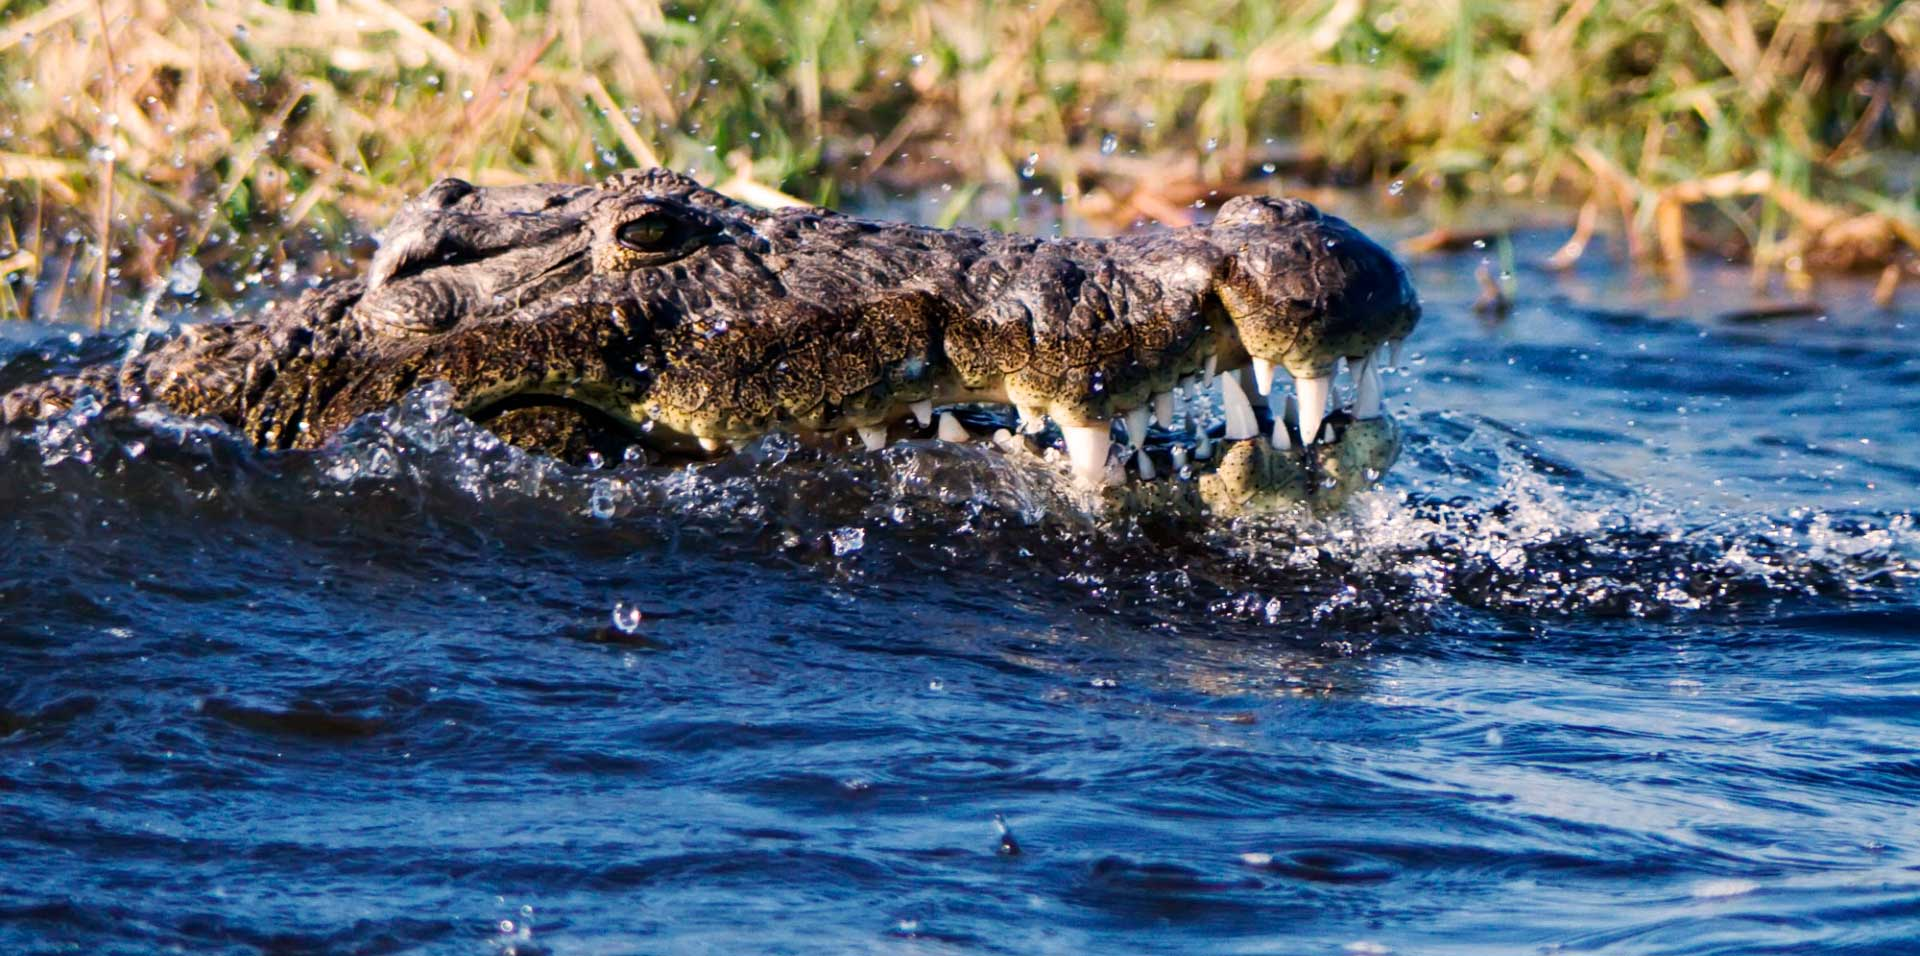 Crocodile breaching from river